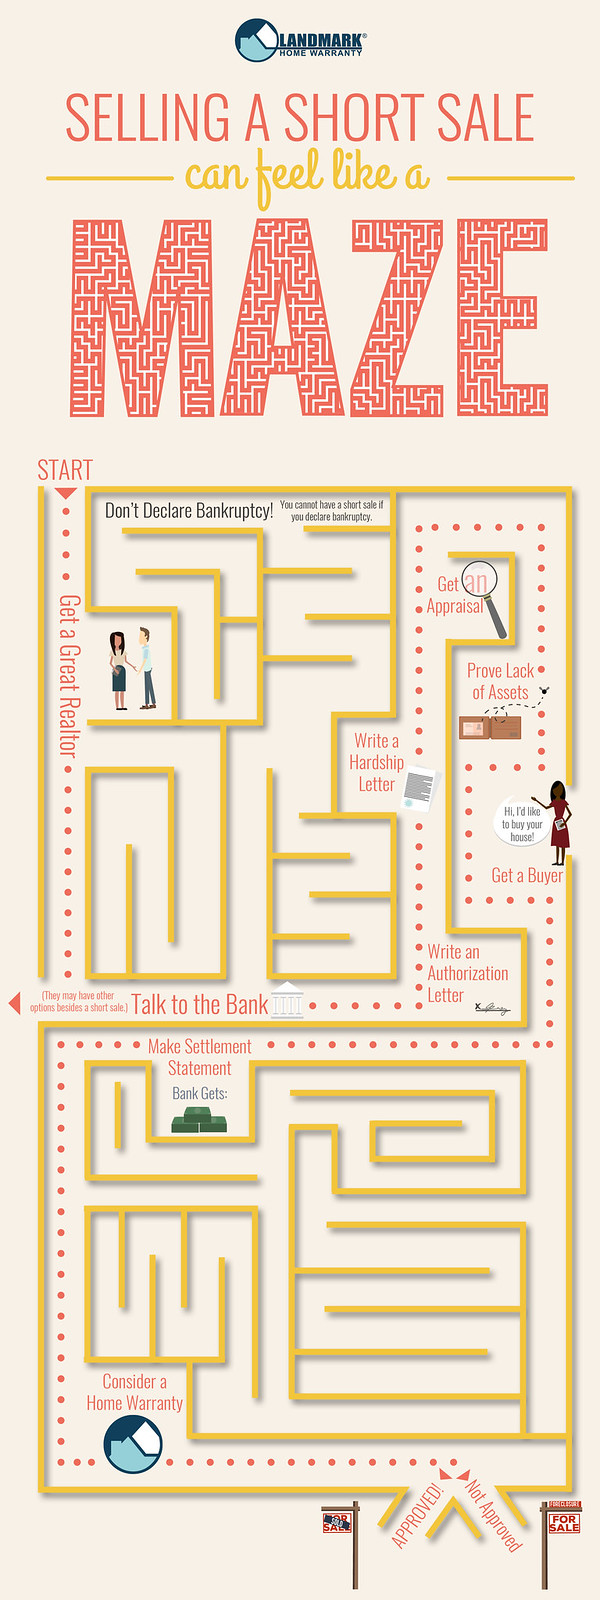 Selling a Short Sale can Feel like a Maze